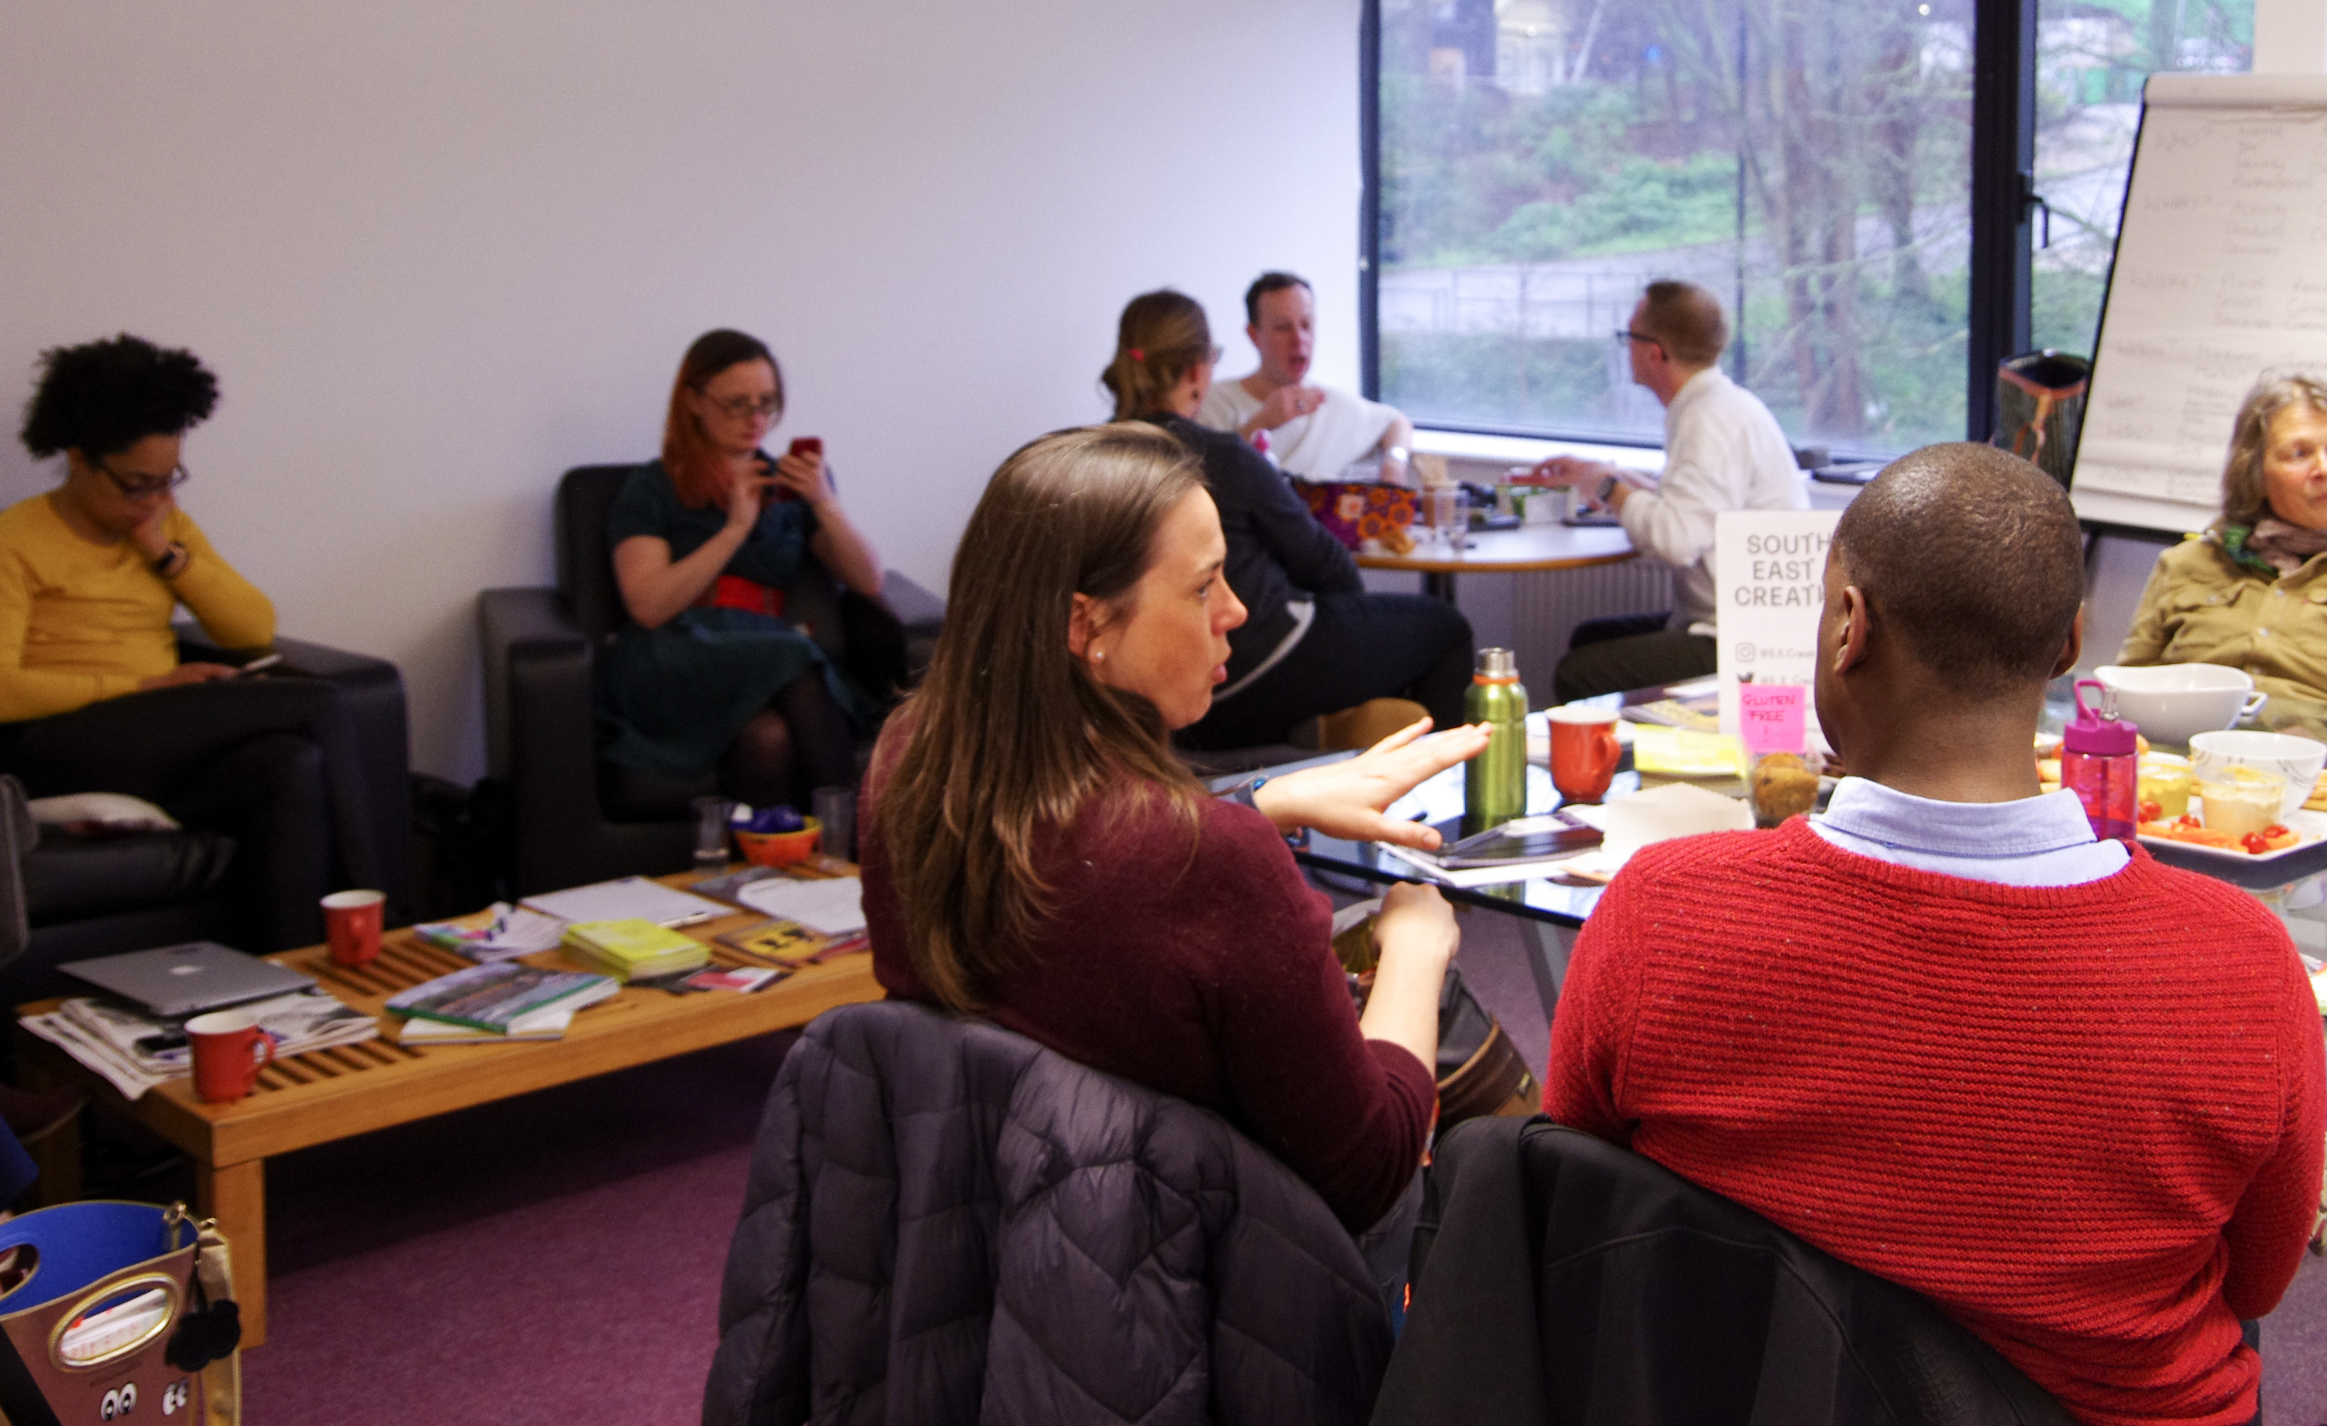 A group of South East Creatives socialising in a breakout room